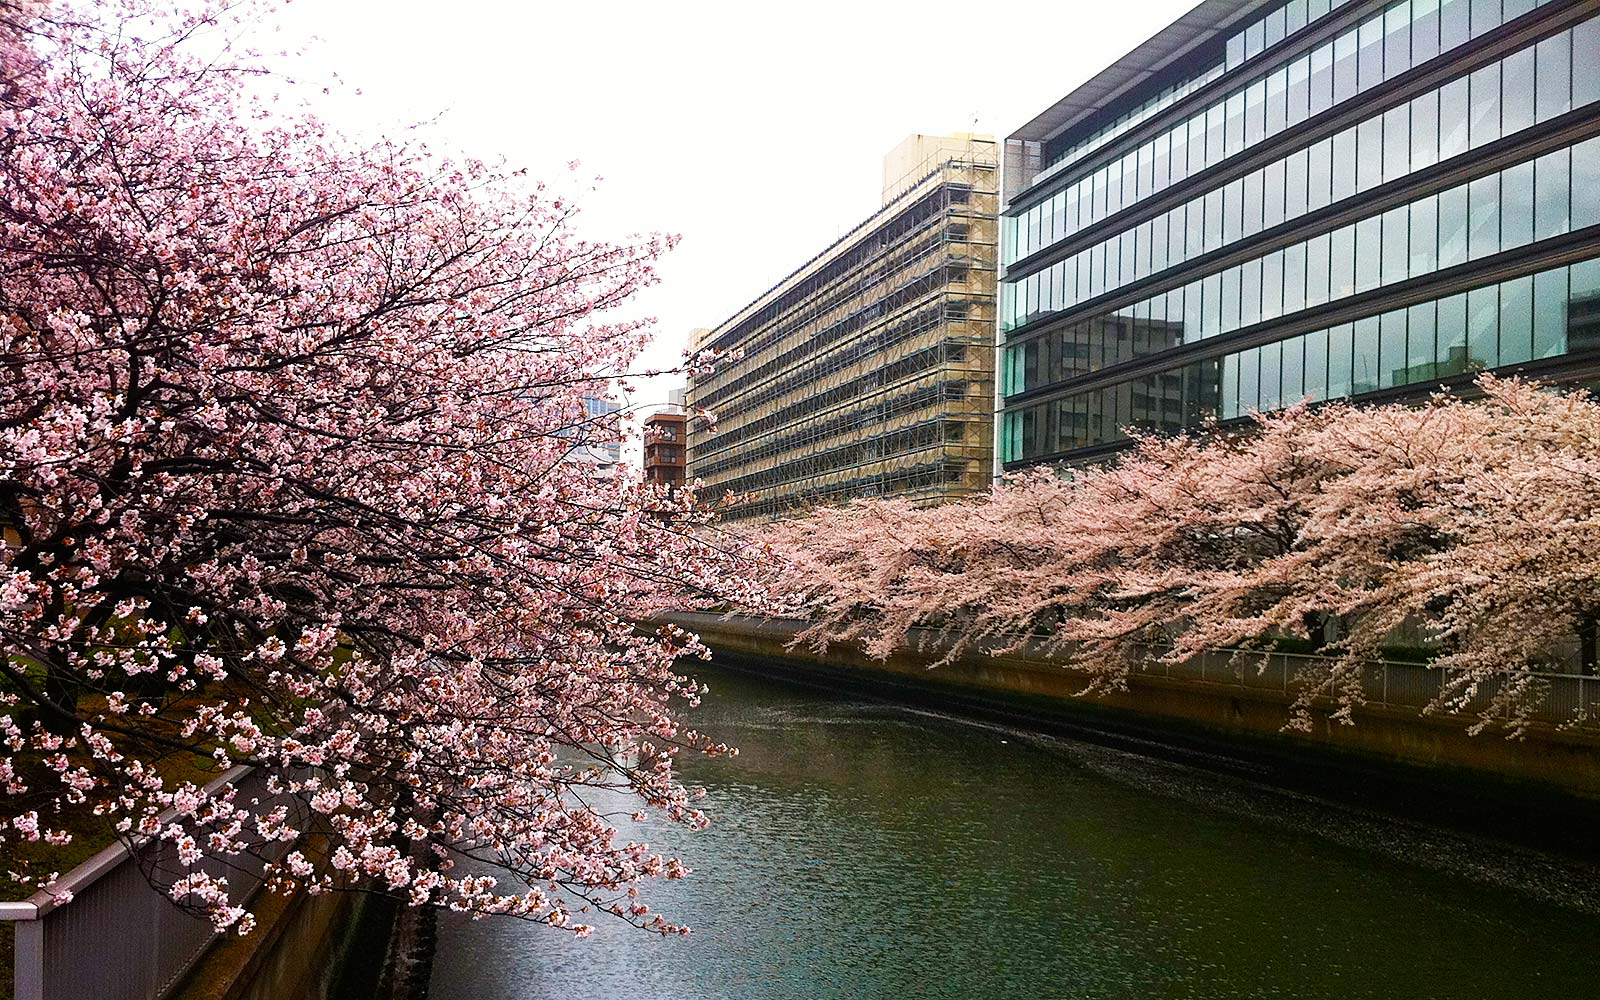 Lesser-known places in Japan to see cherry blossoms